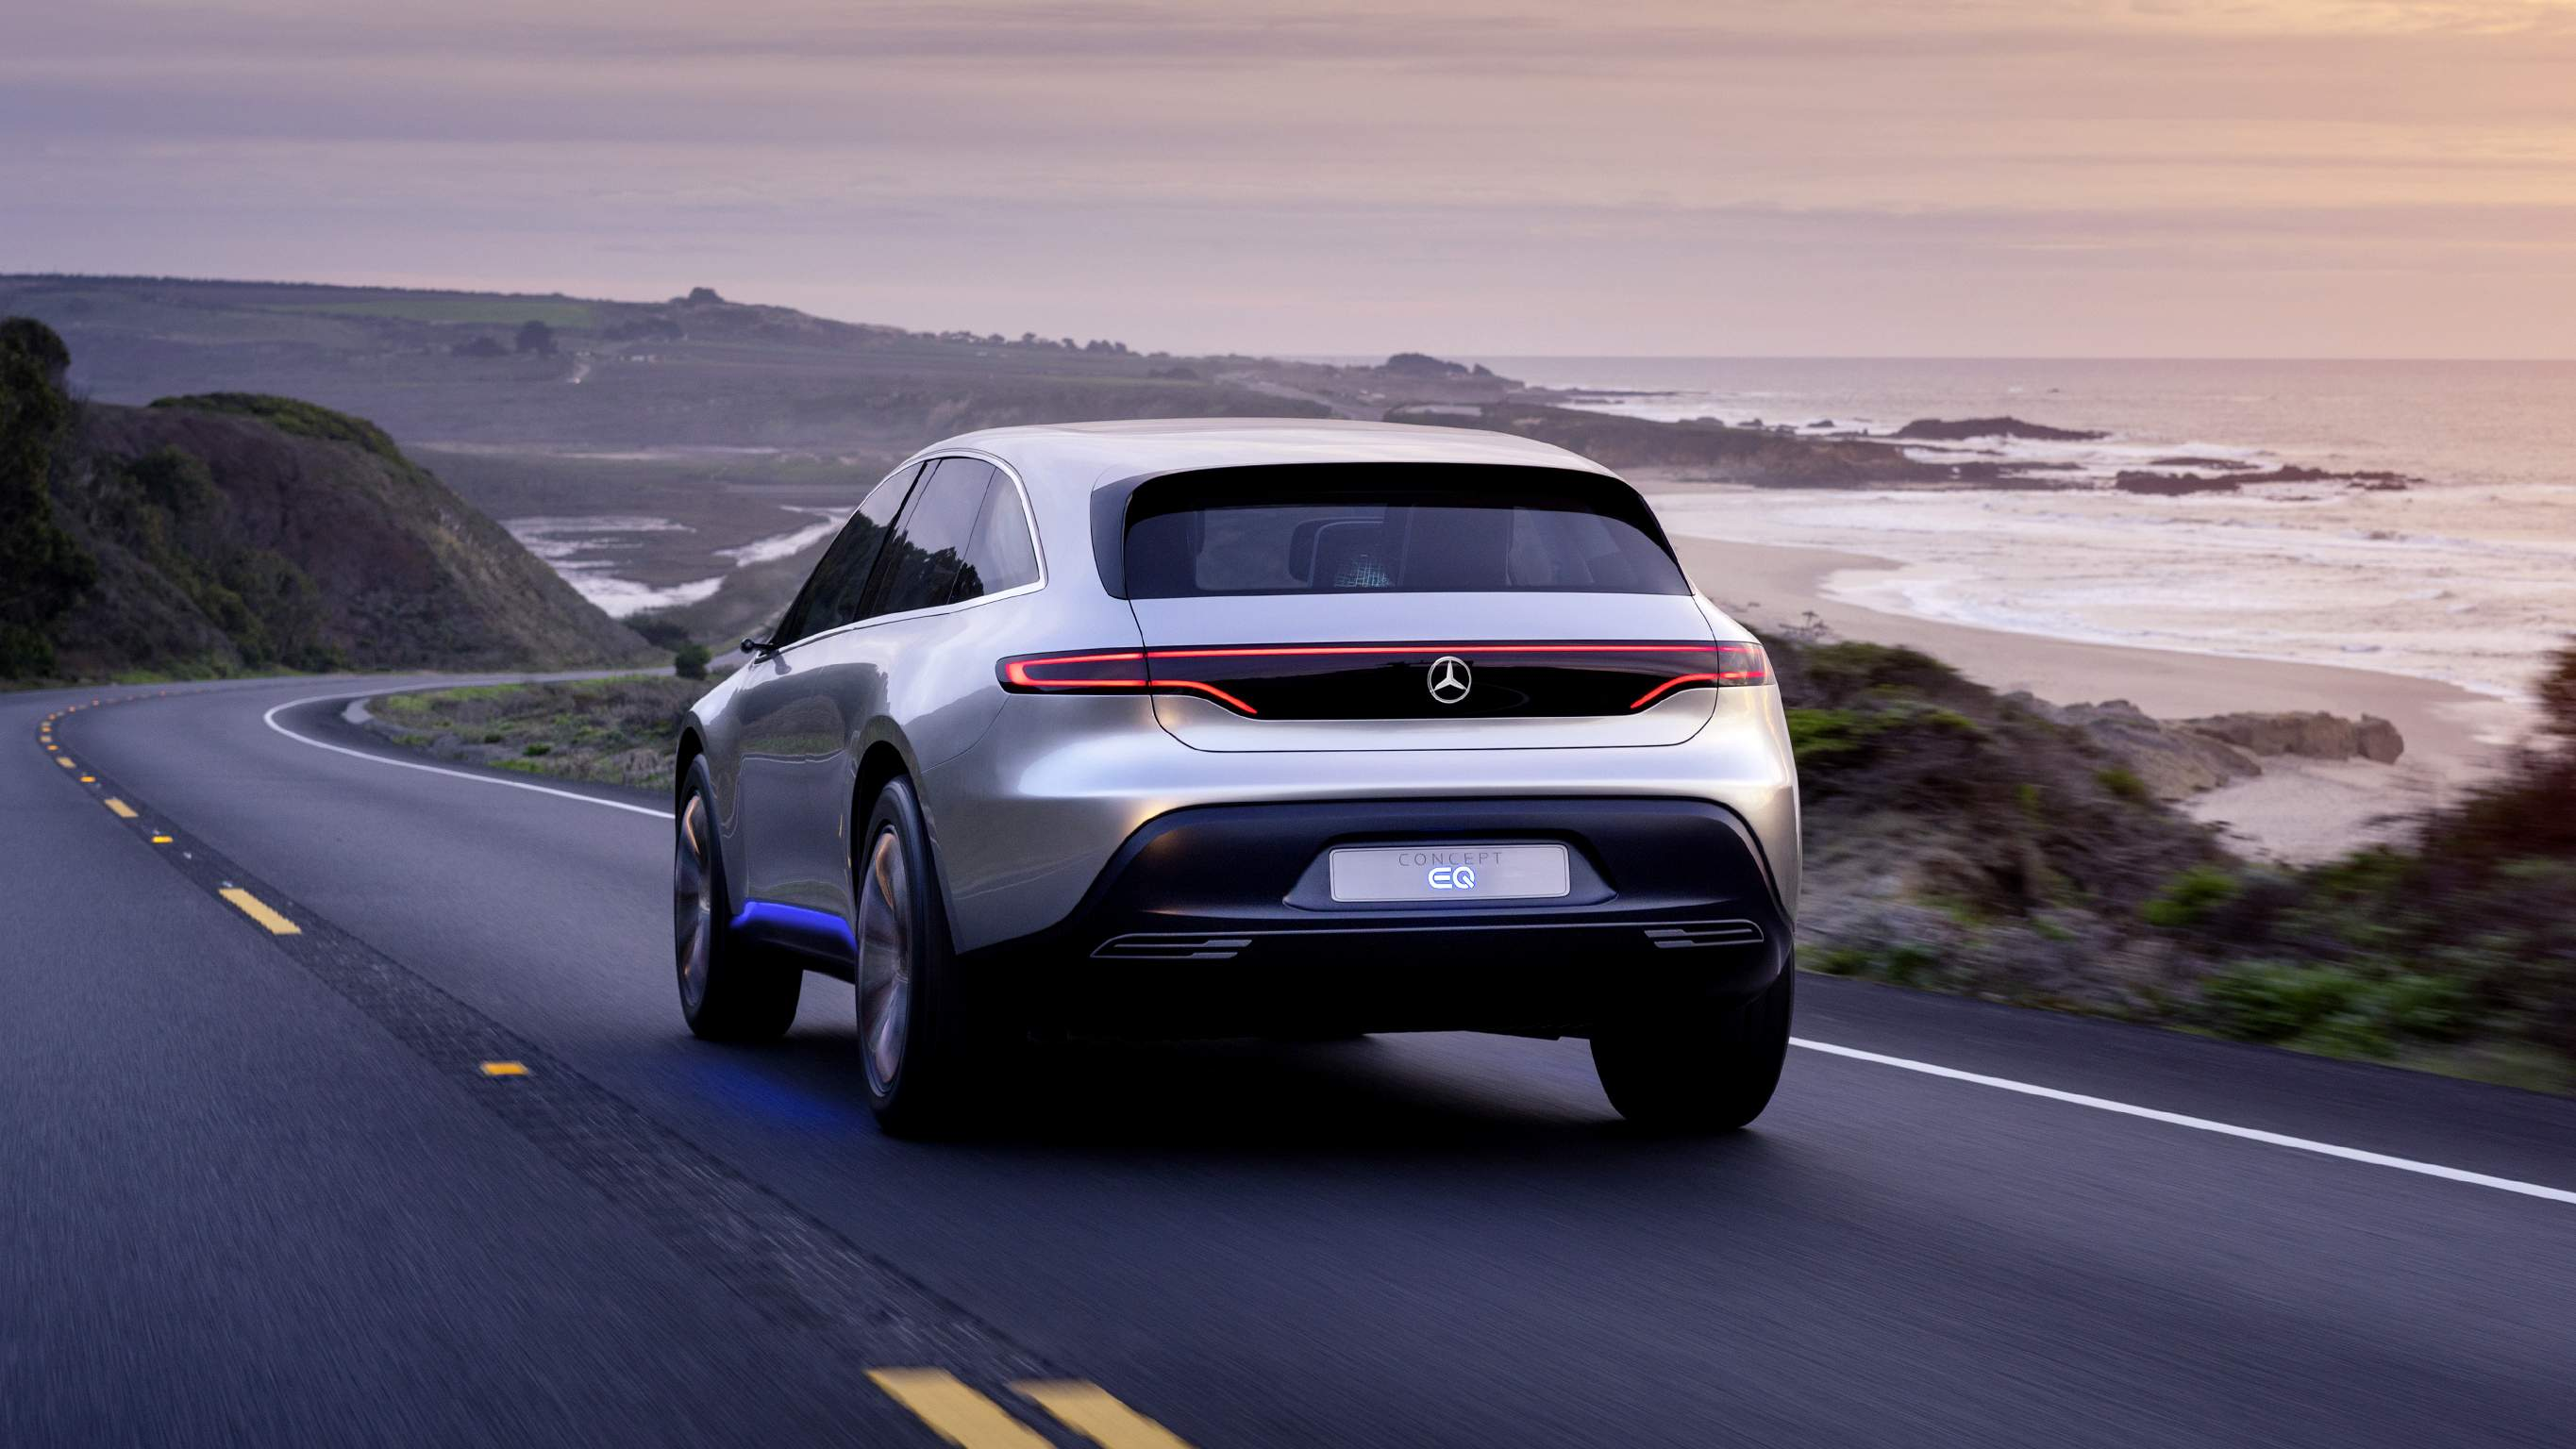 Mercedes-Benz Concept EQ вид сзади